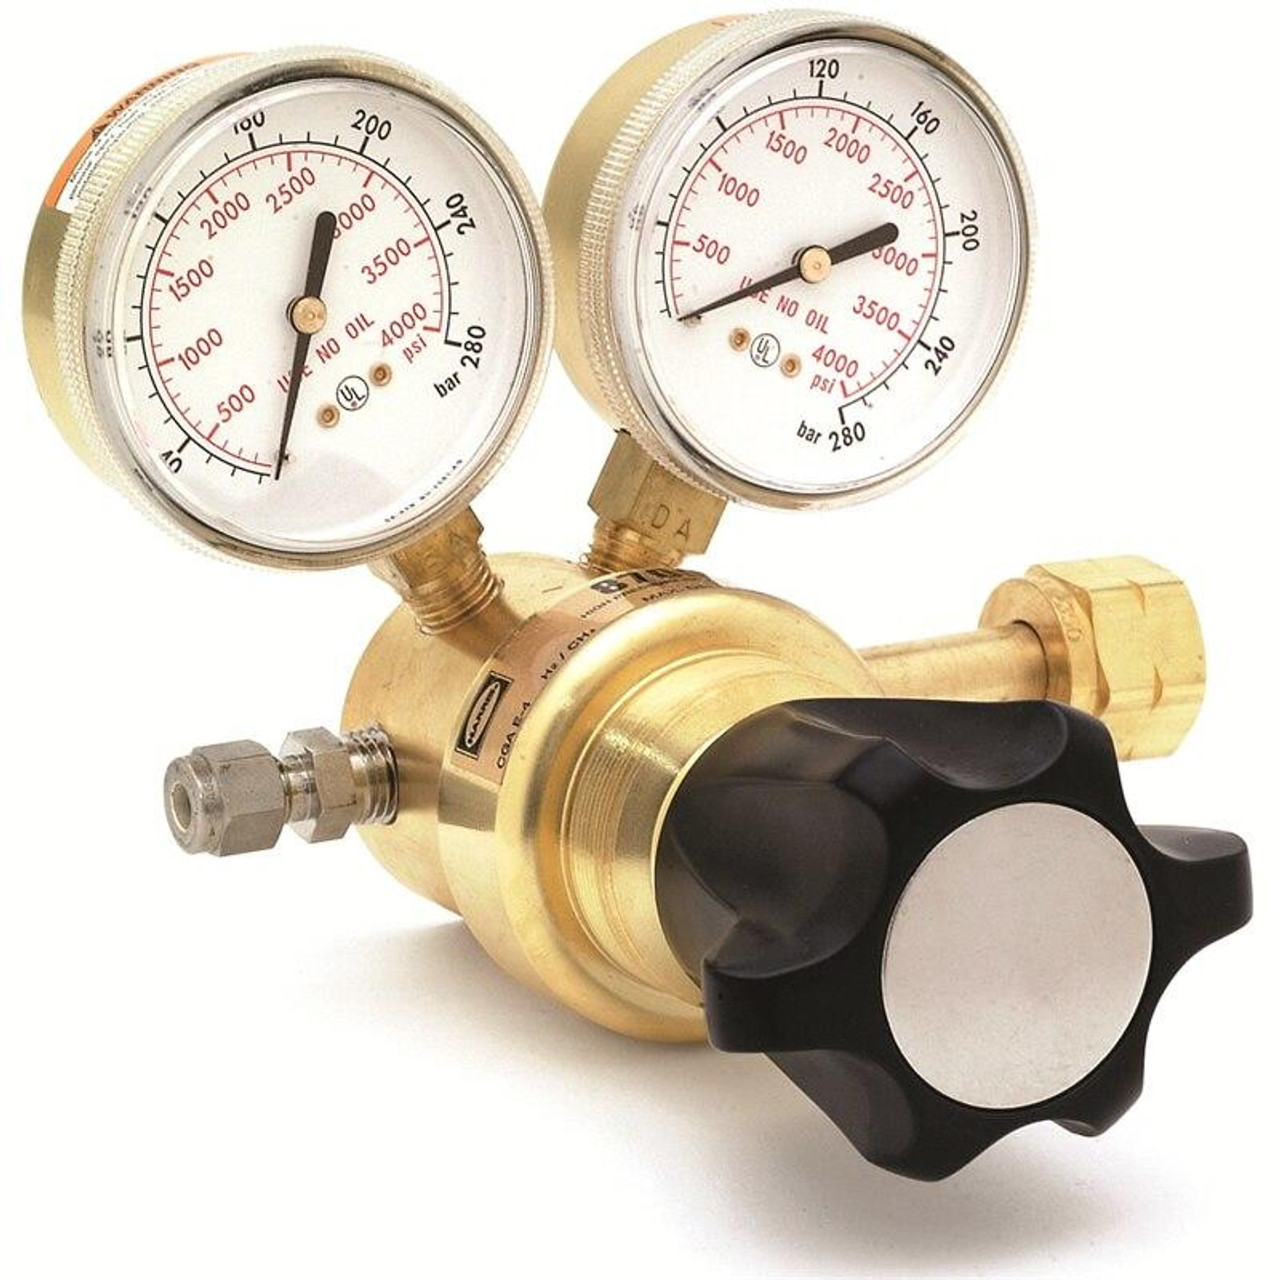 Harris Model 8700-2500-590 Industrial Air Ultra High Delivery Pressure Regulator - 3200305